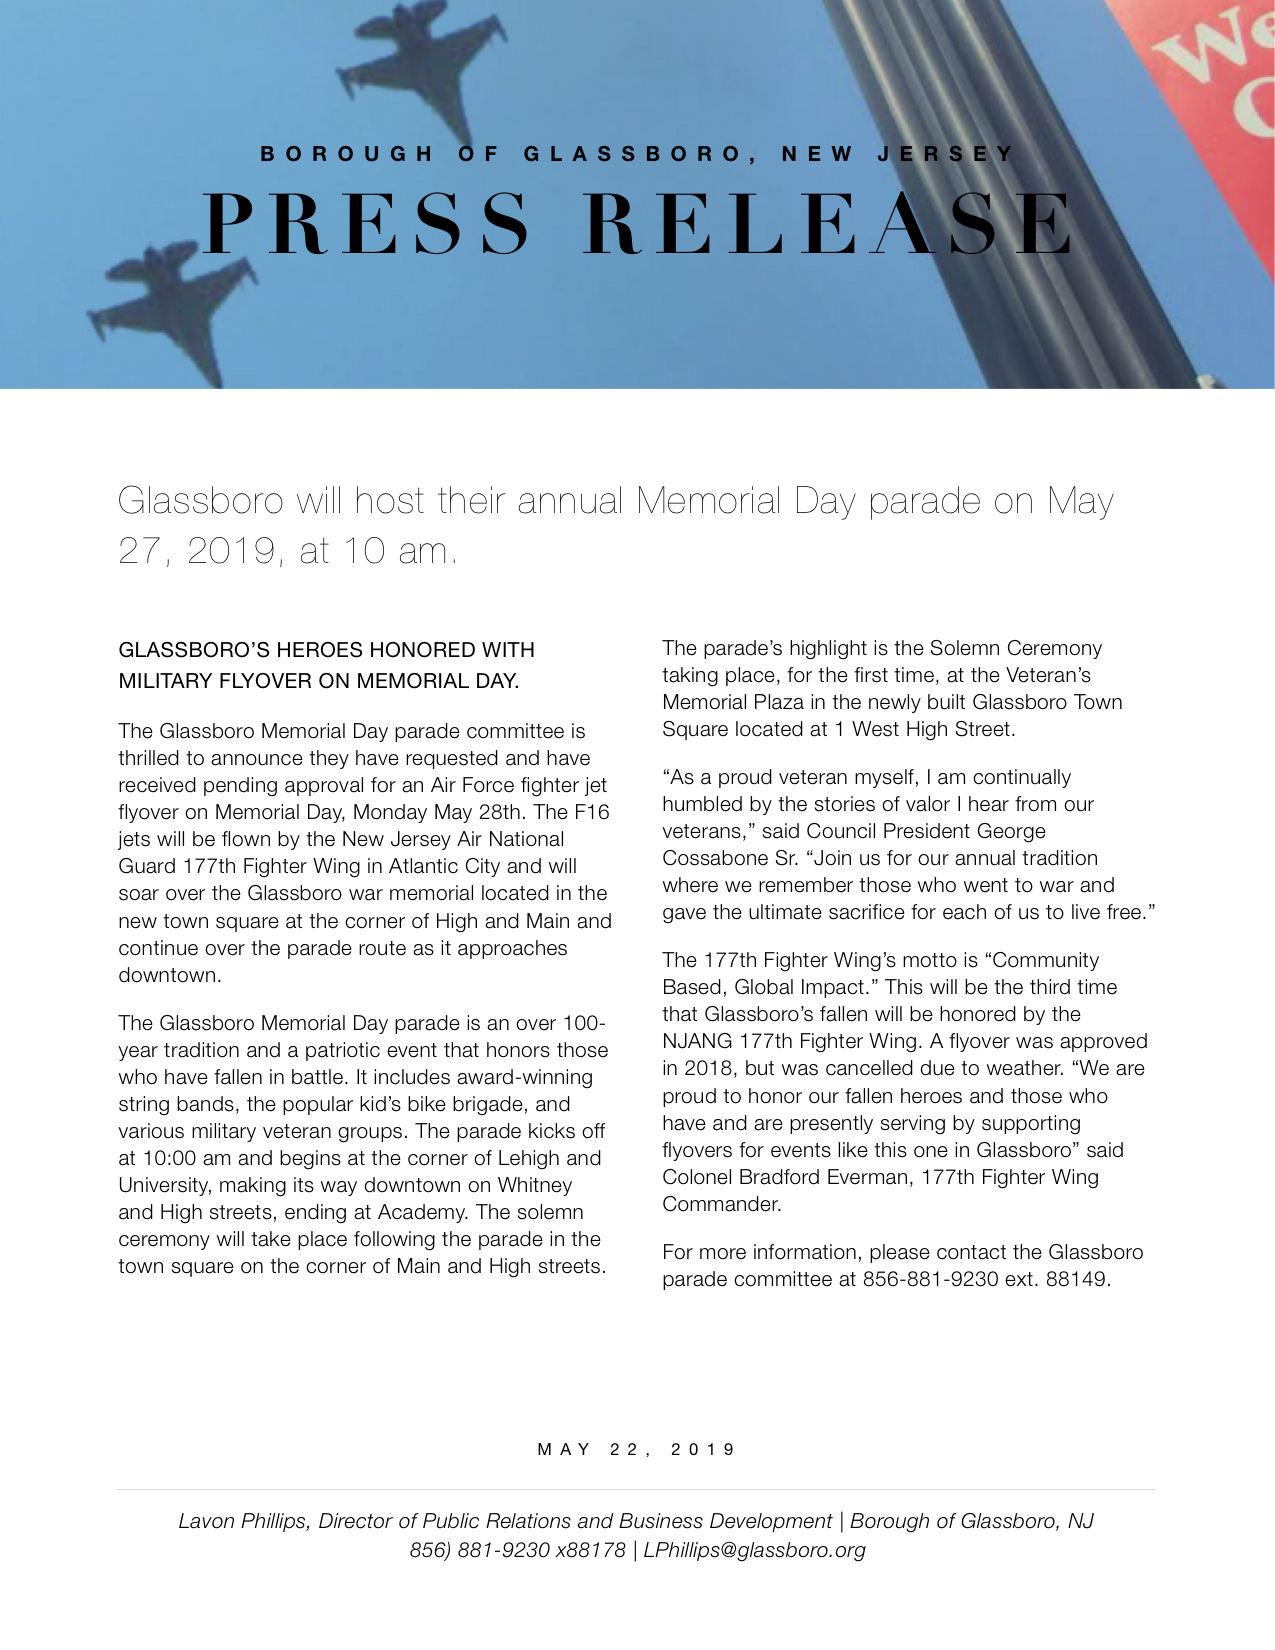 Glassboro NJ Press release MEMORIAL DAY PARADE 2019.jpeg